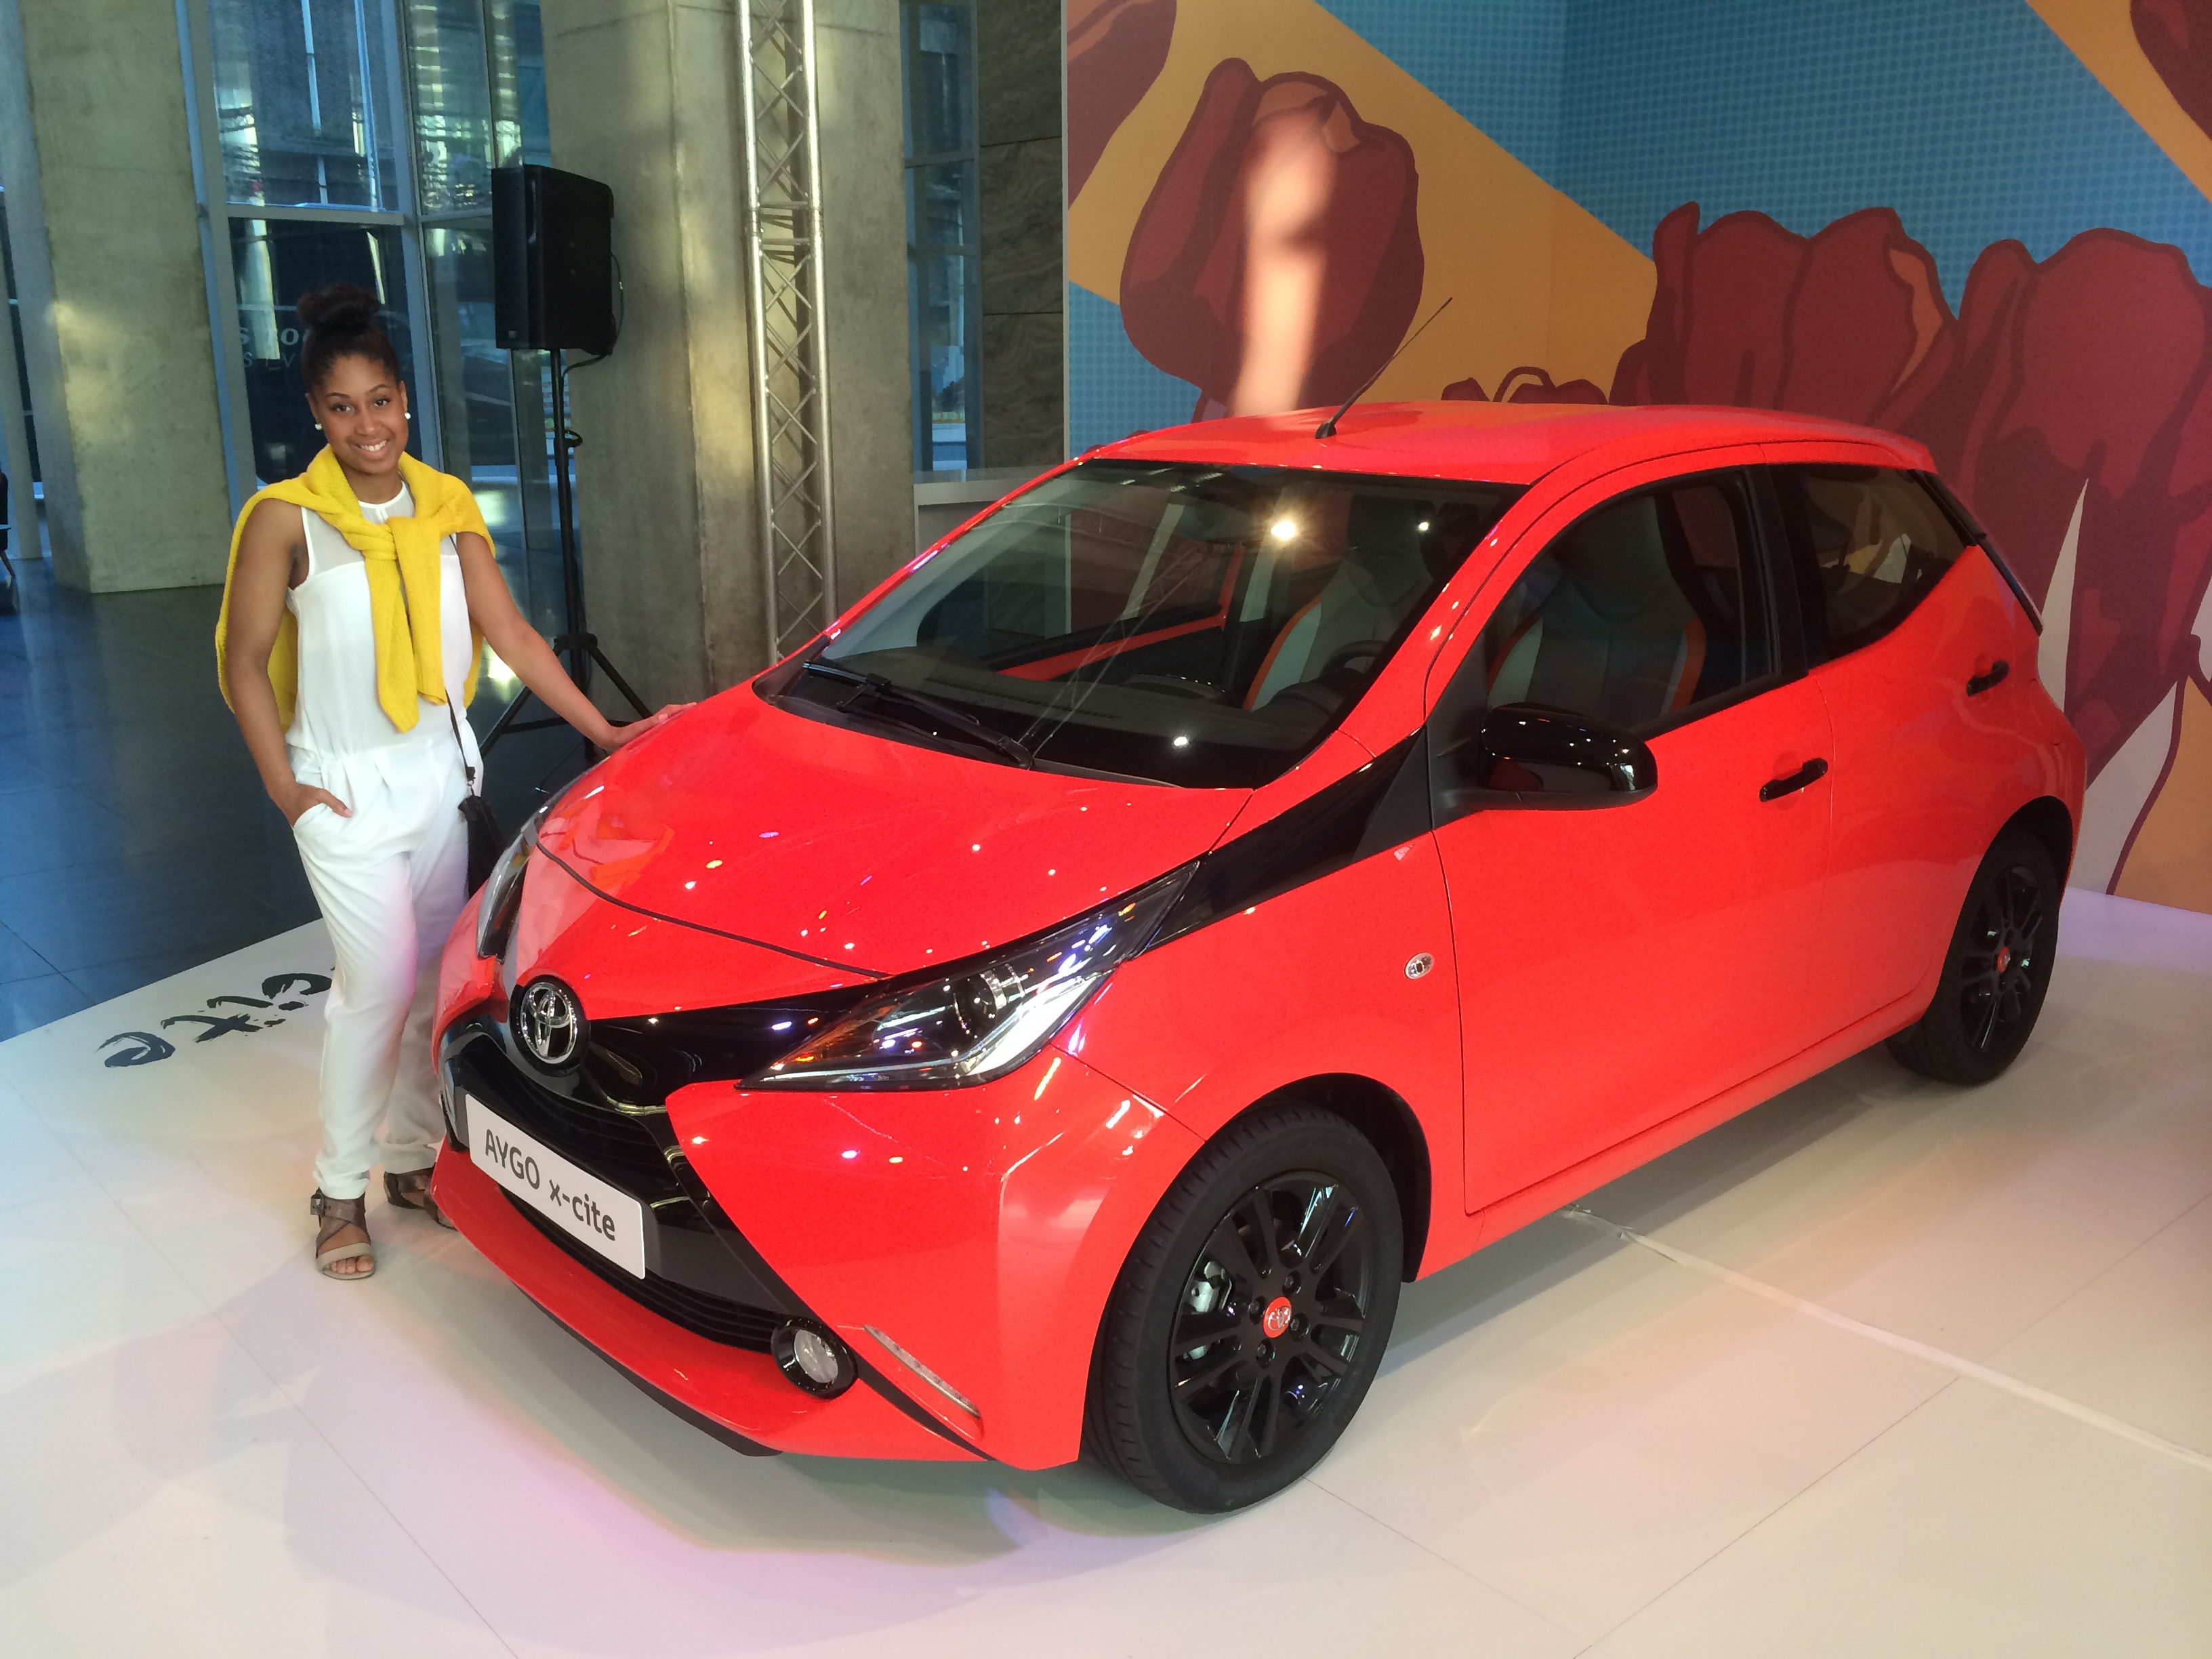 Aygo x-cite Stacey